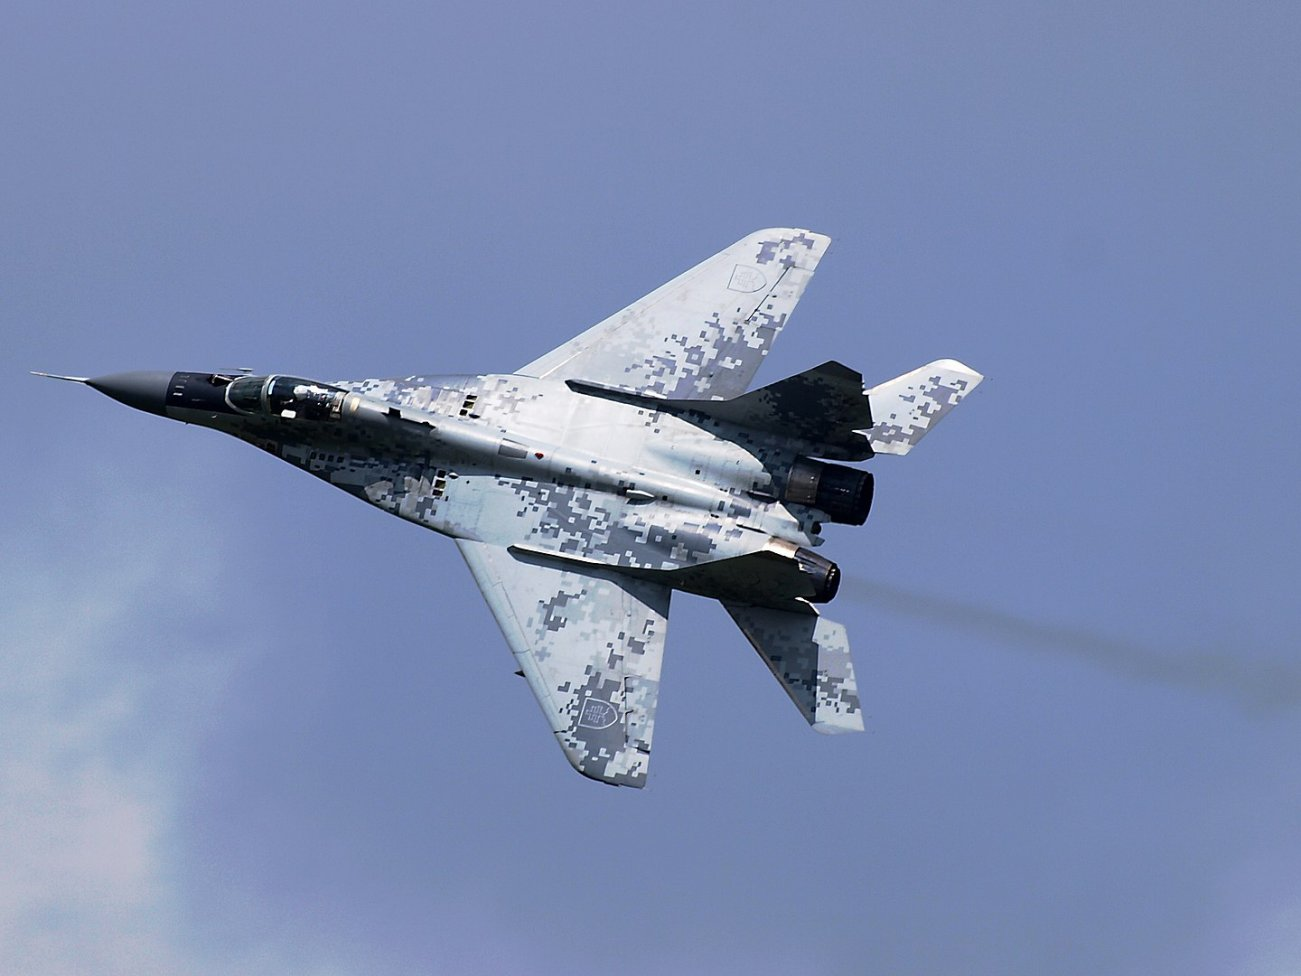 Secret Is Out: Why America Bought 21 Russian MiG-29 Fighters